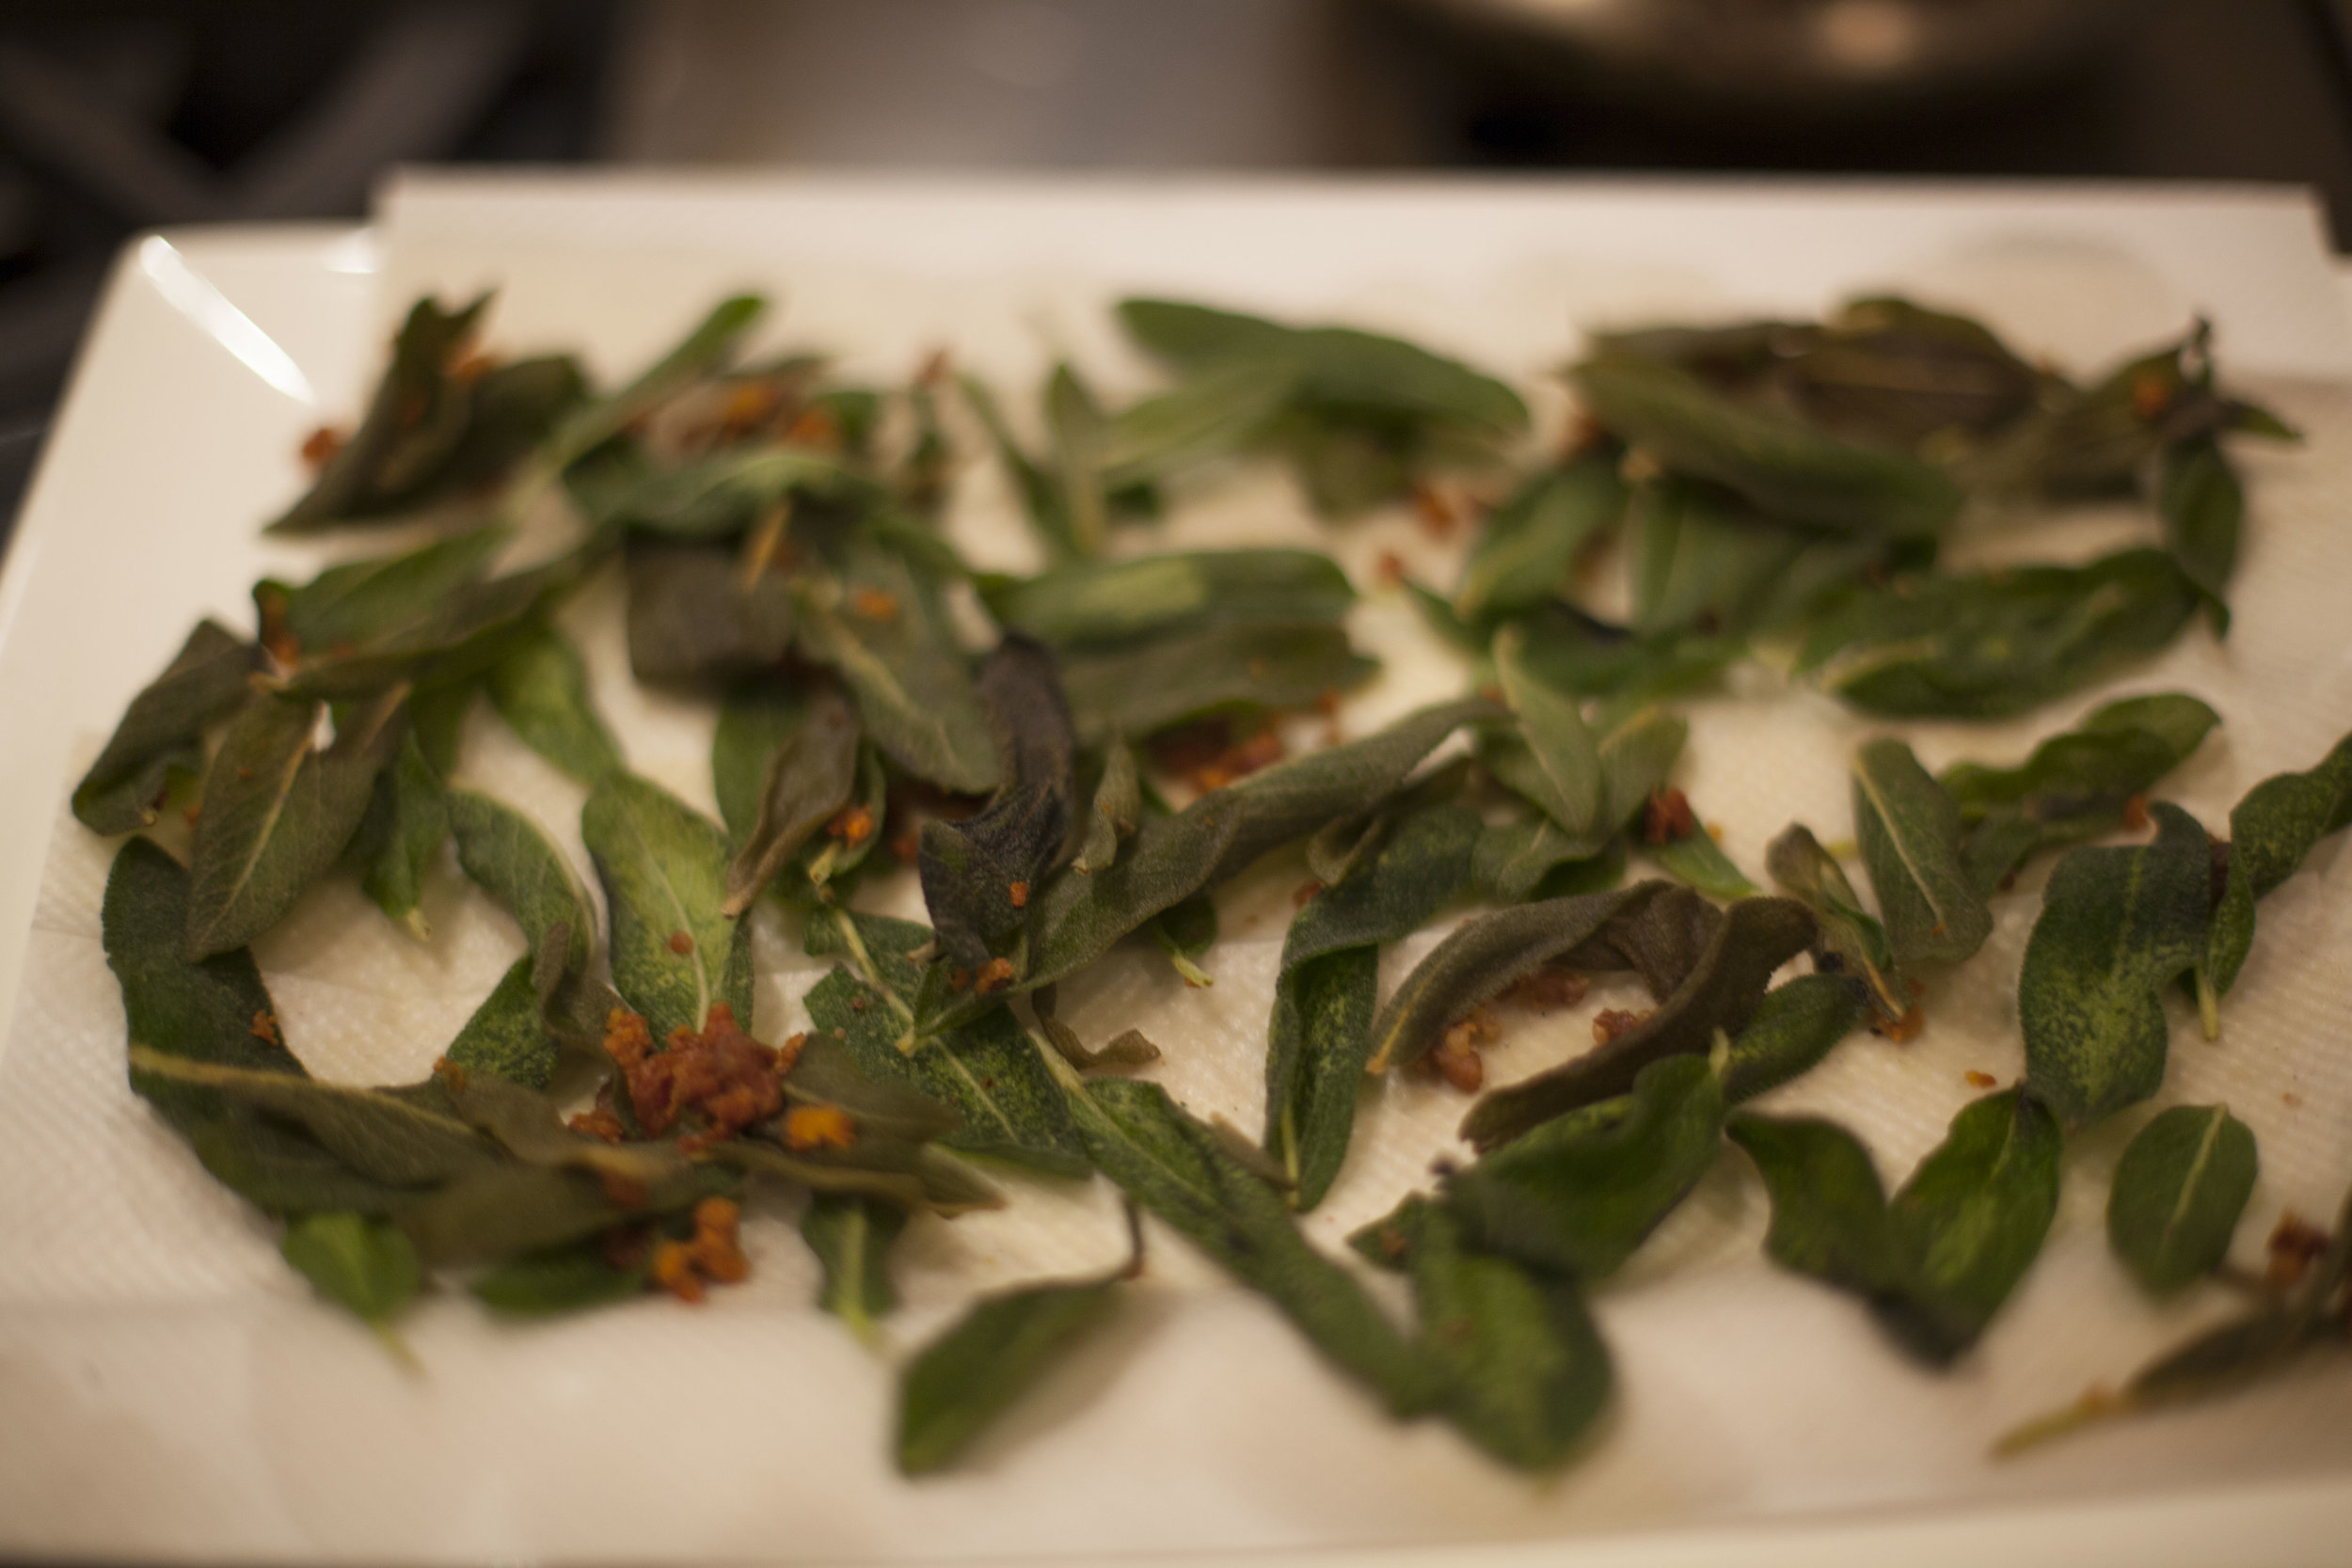 Here are the fried sage leaves we used to garnish the pasta dish.